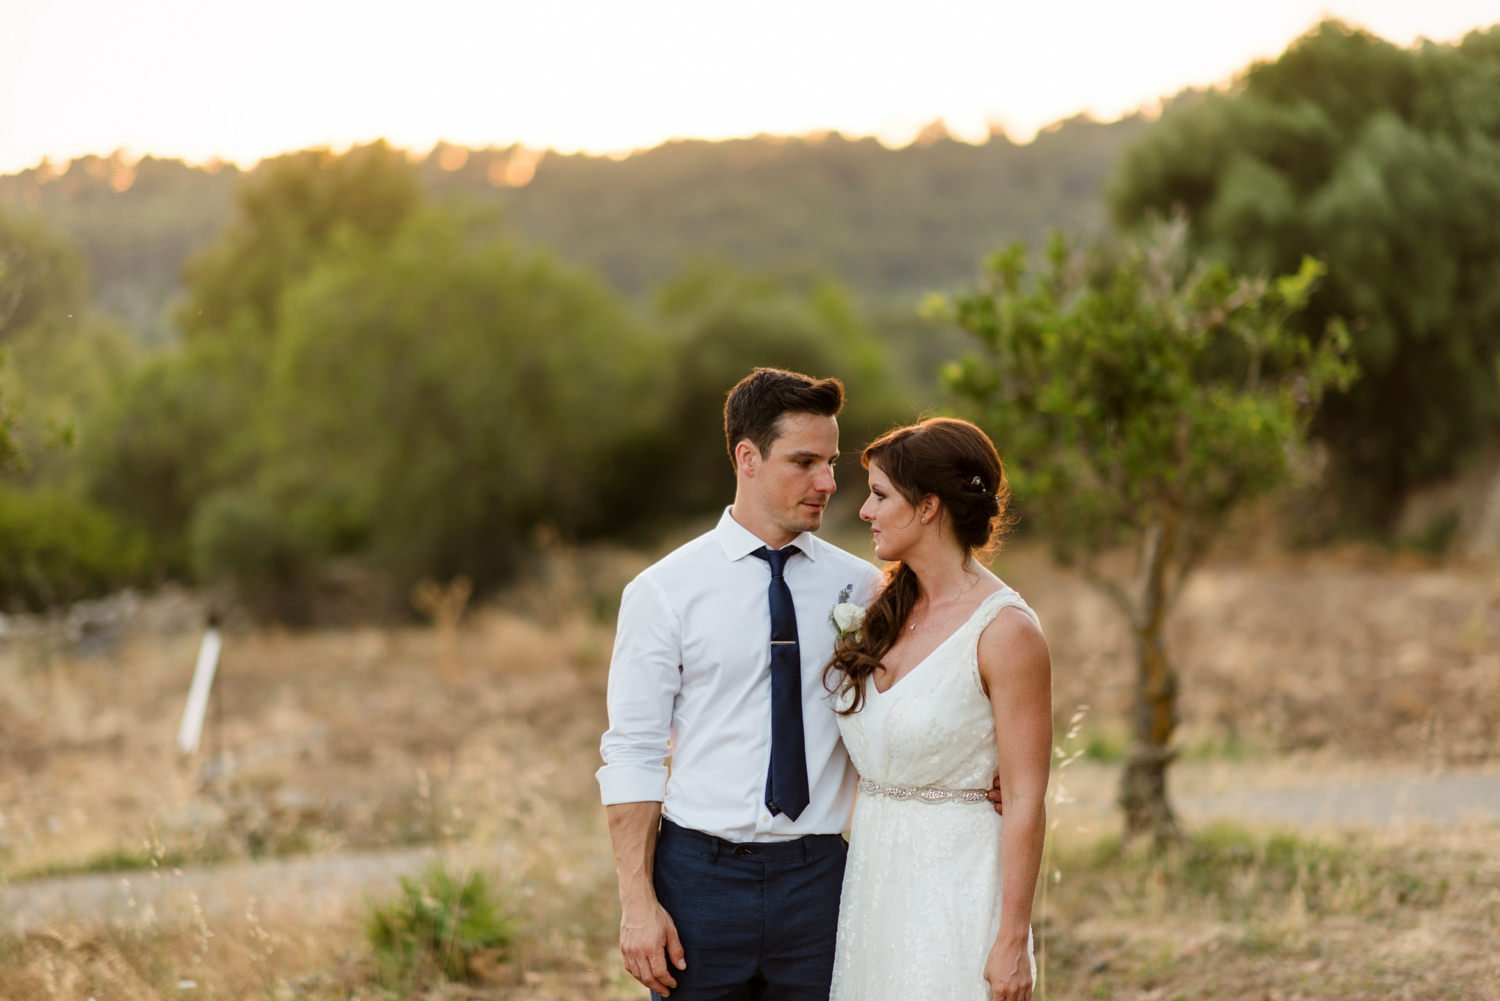 Rustic sunny Mallorca wedding portrait